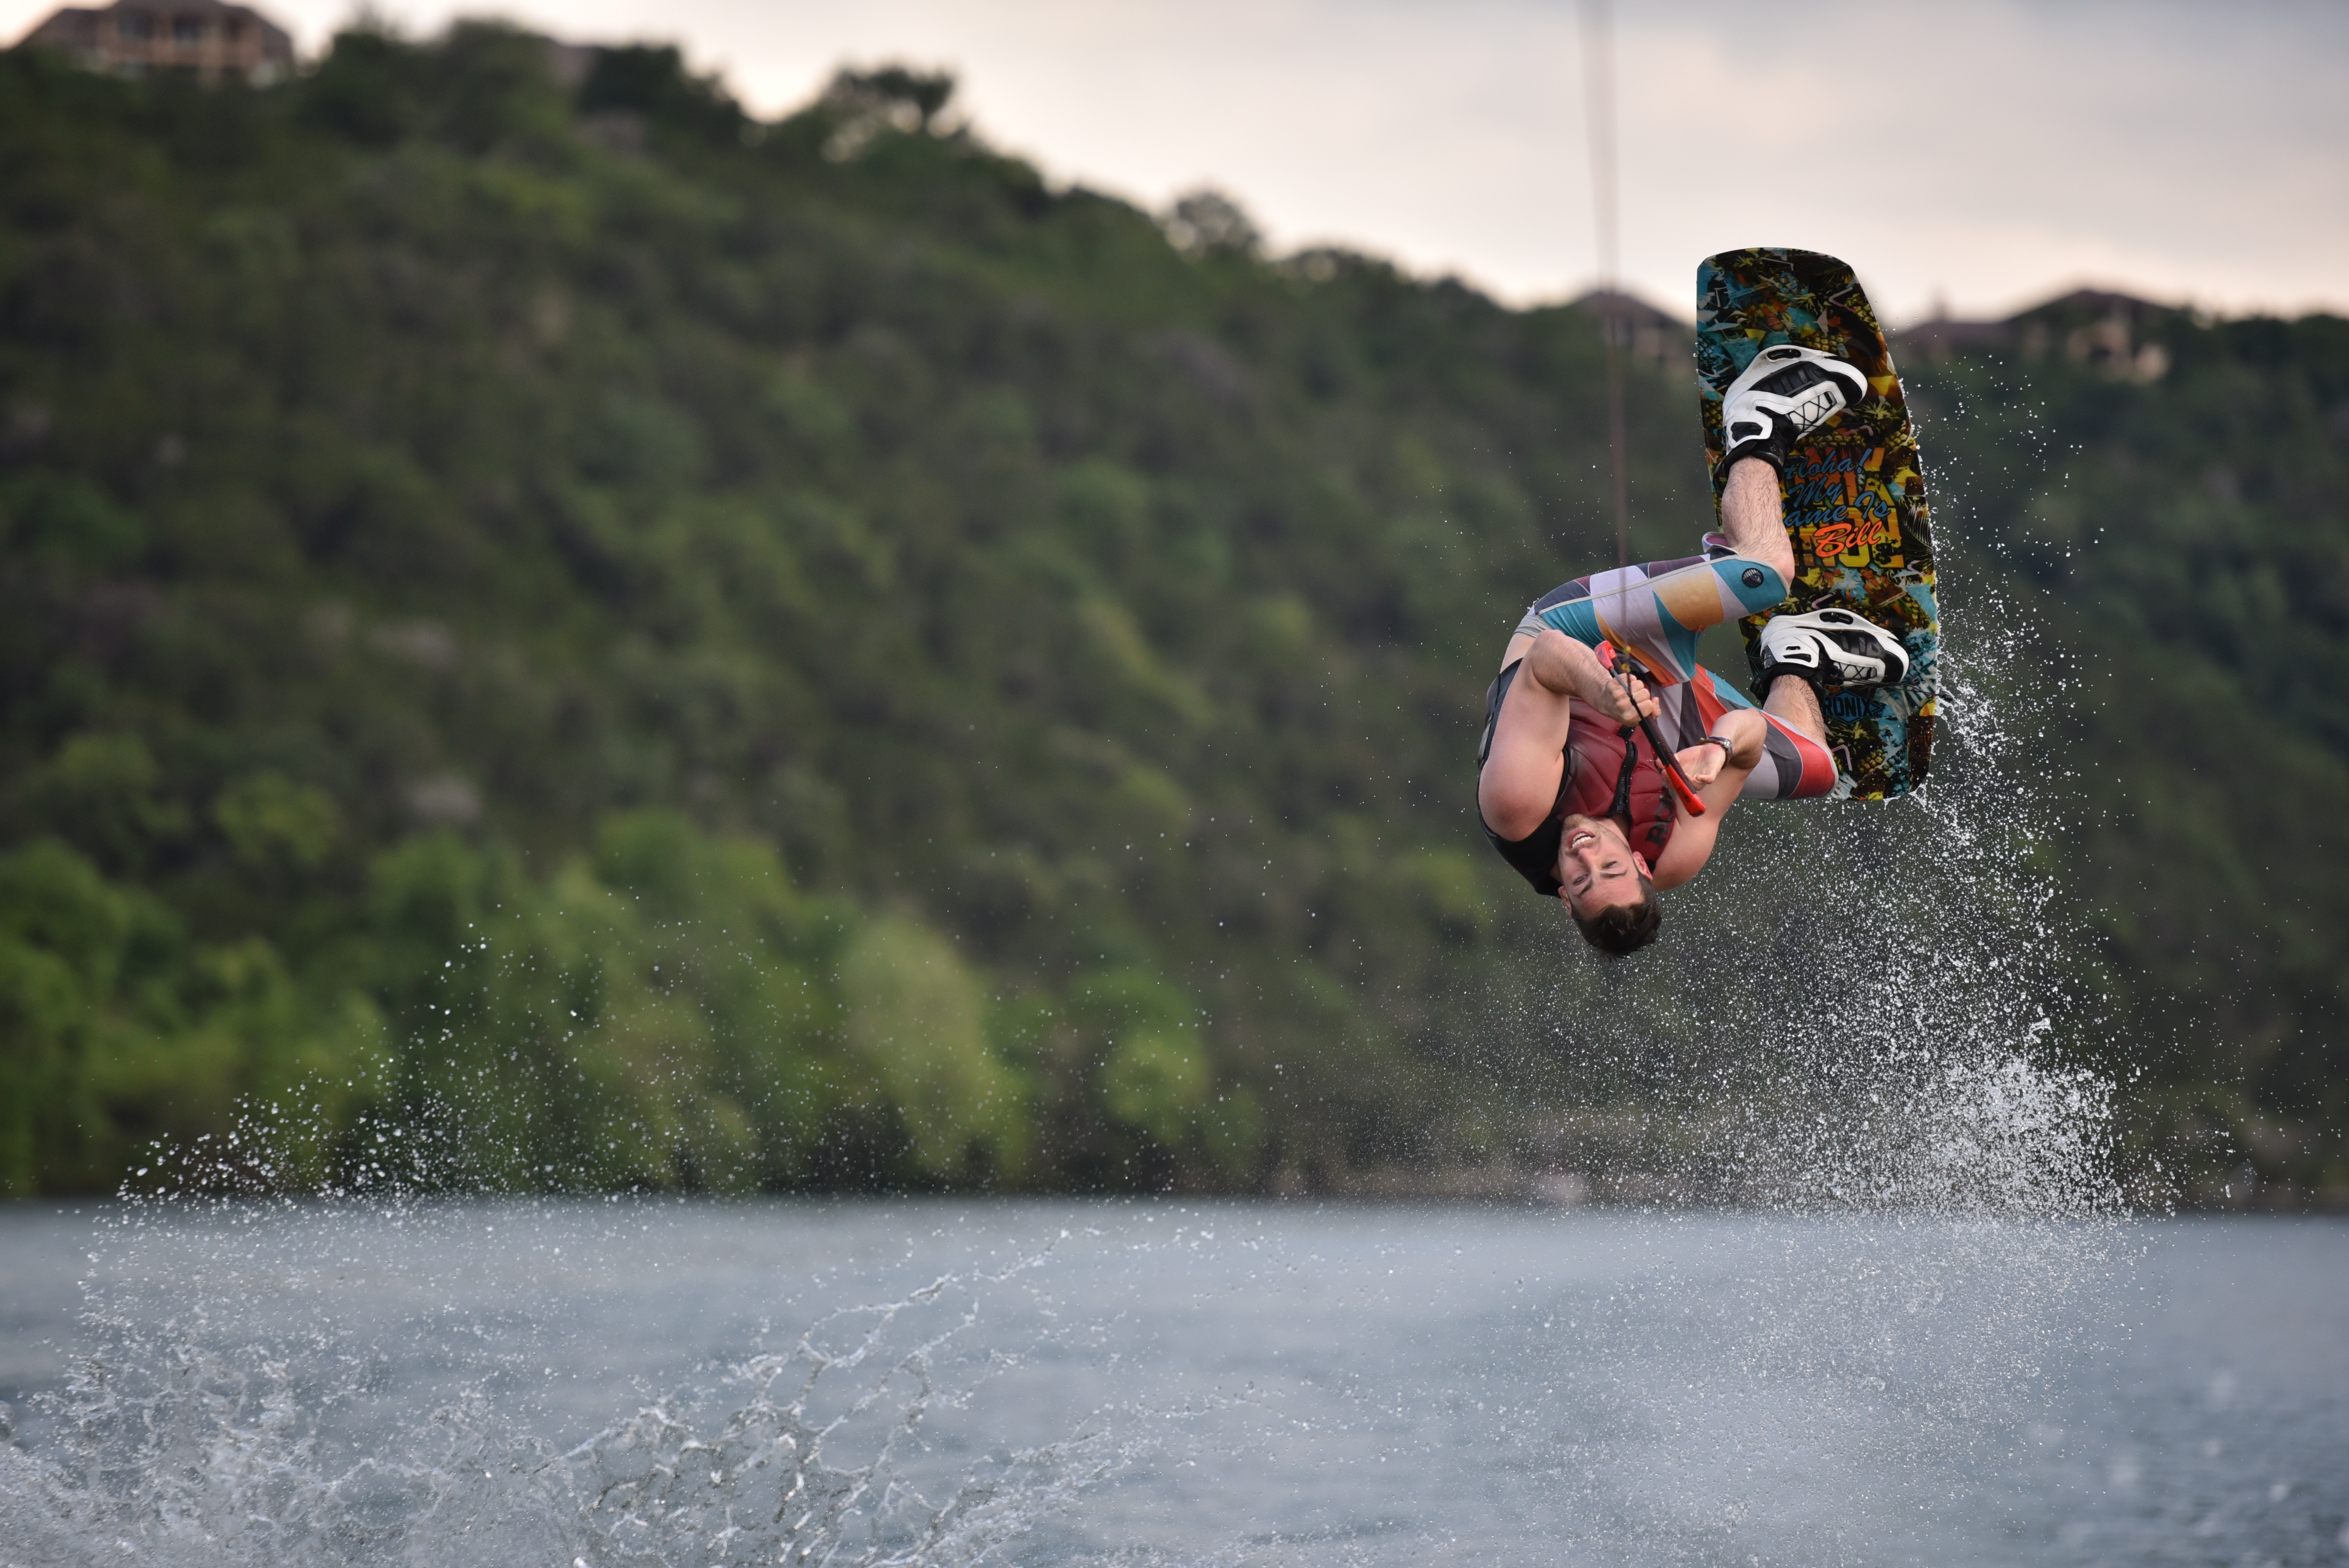 Best wakeboard sales from boardsportsales.com